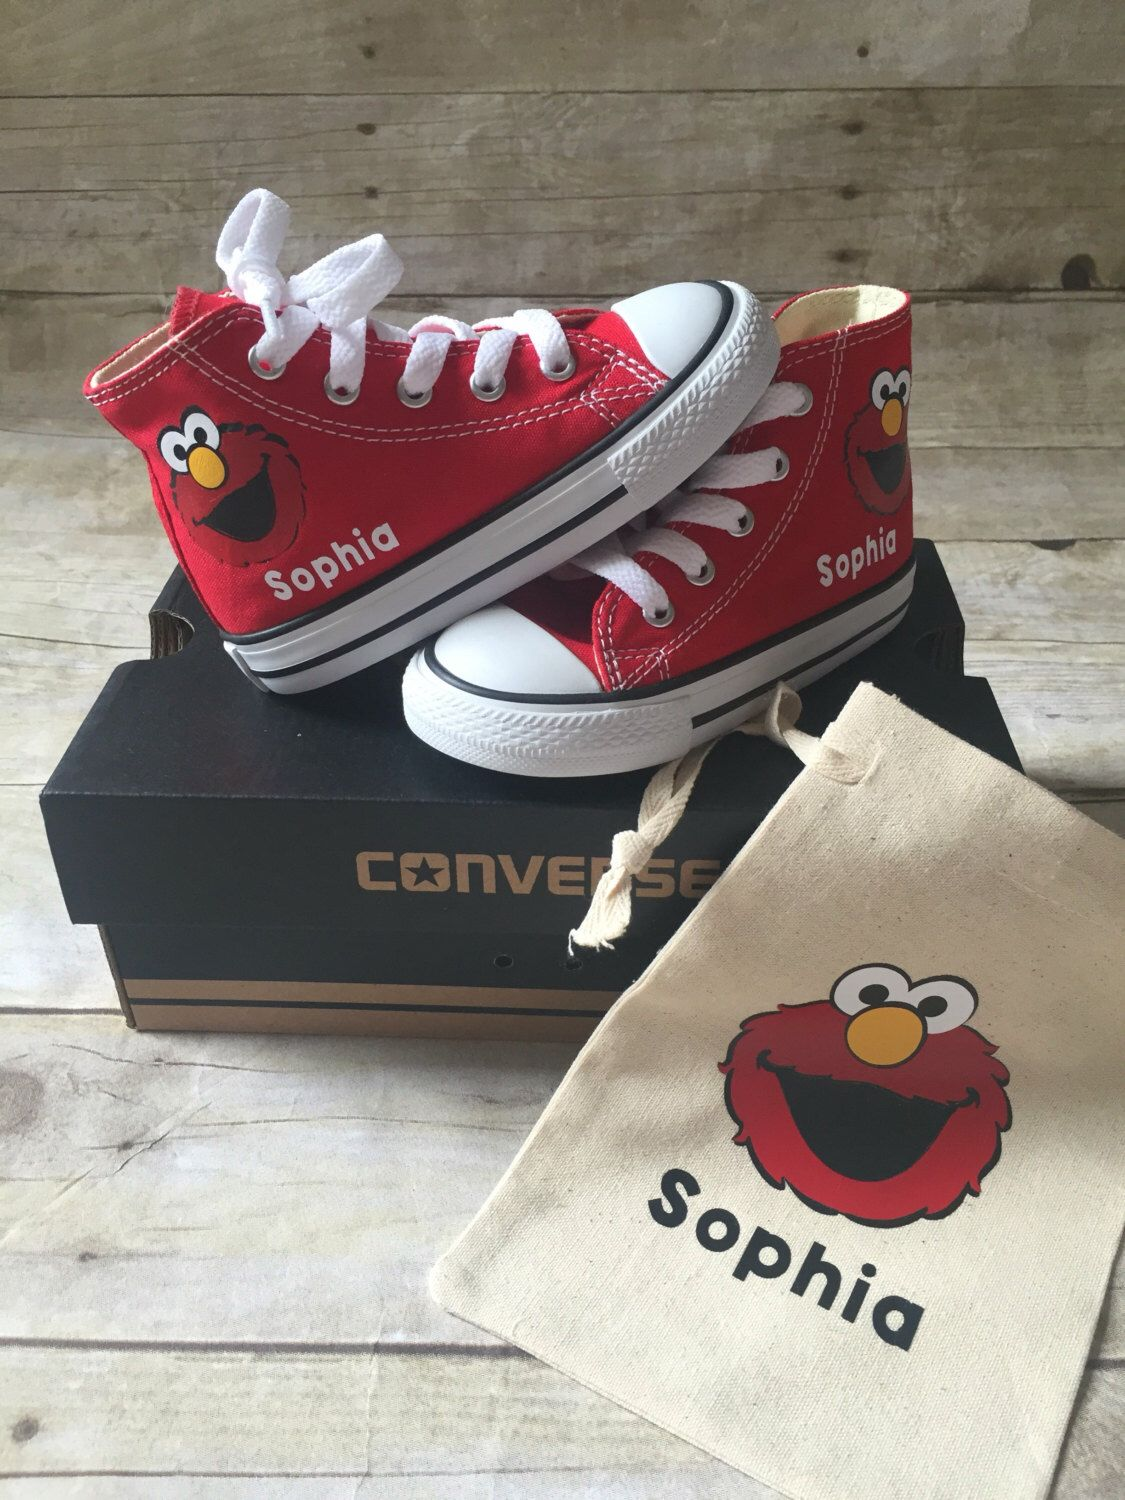 072e8a6edf64 Elmo Shoes - personalized chuck taylors - customized converse - Sesame  Street - Birthday swag by